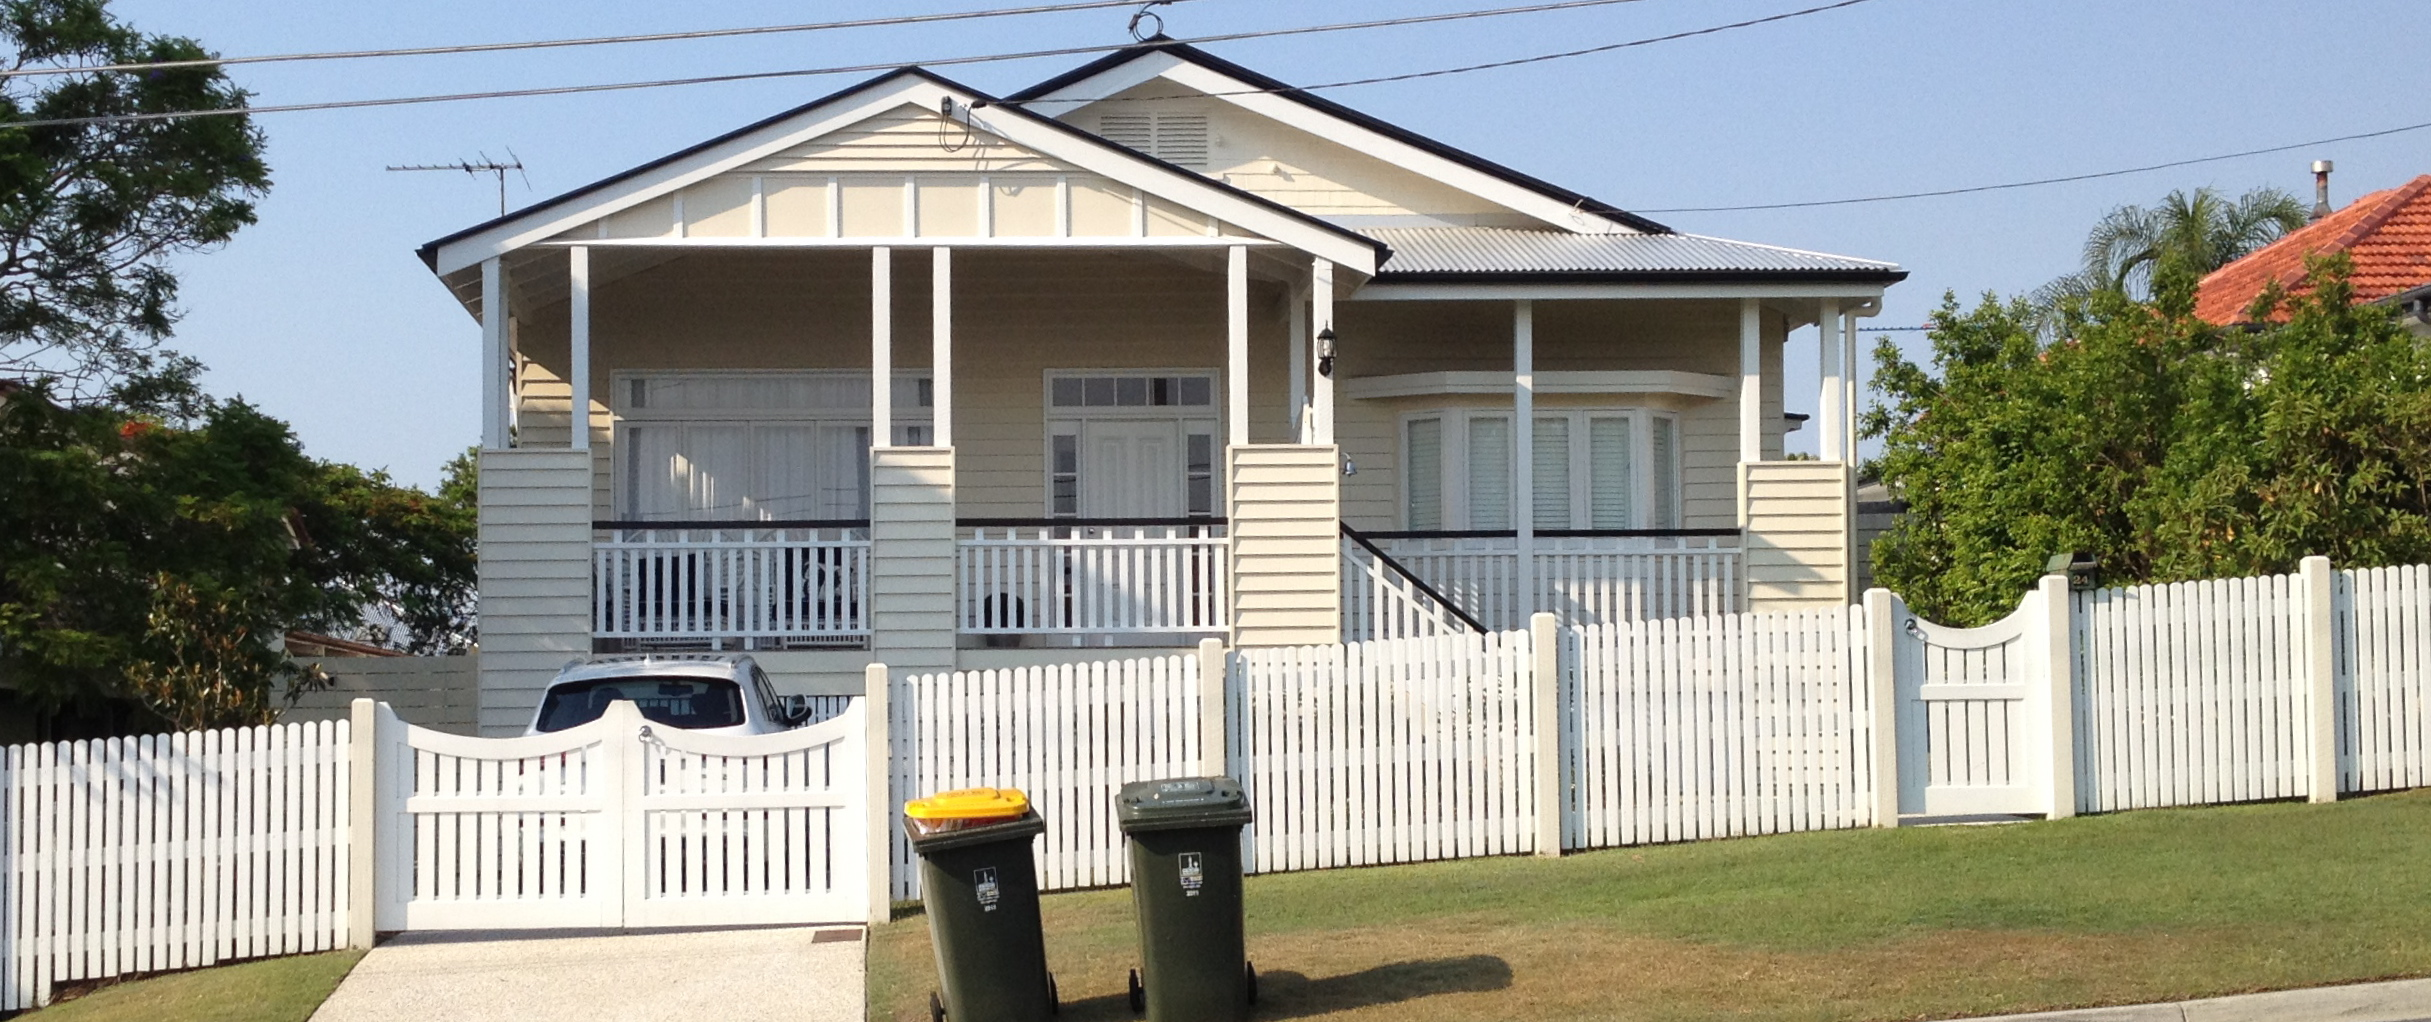 Queenslander Home The House That Jess Built